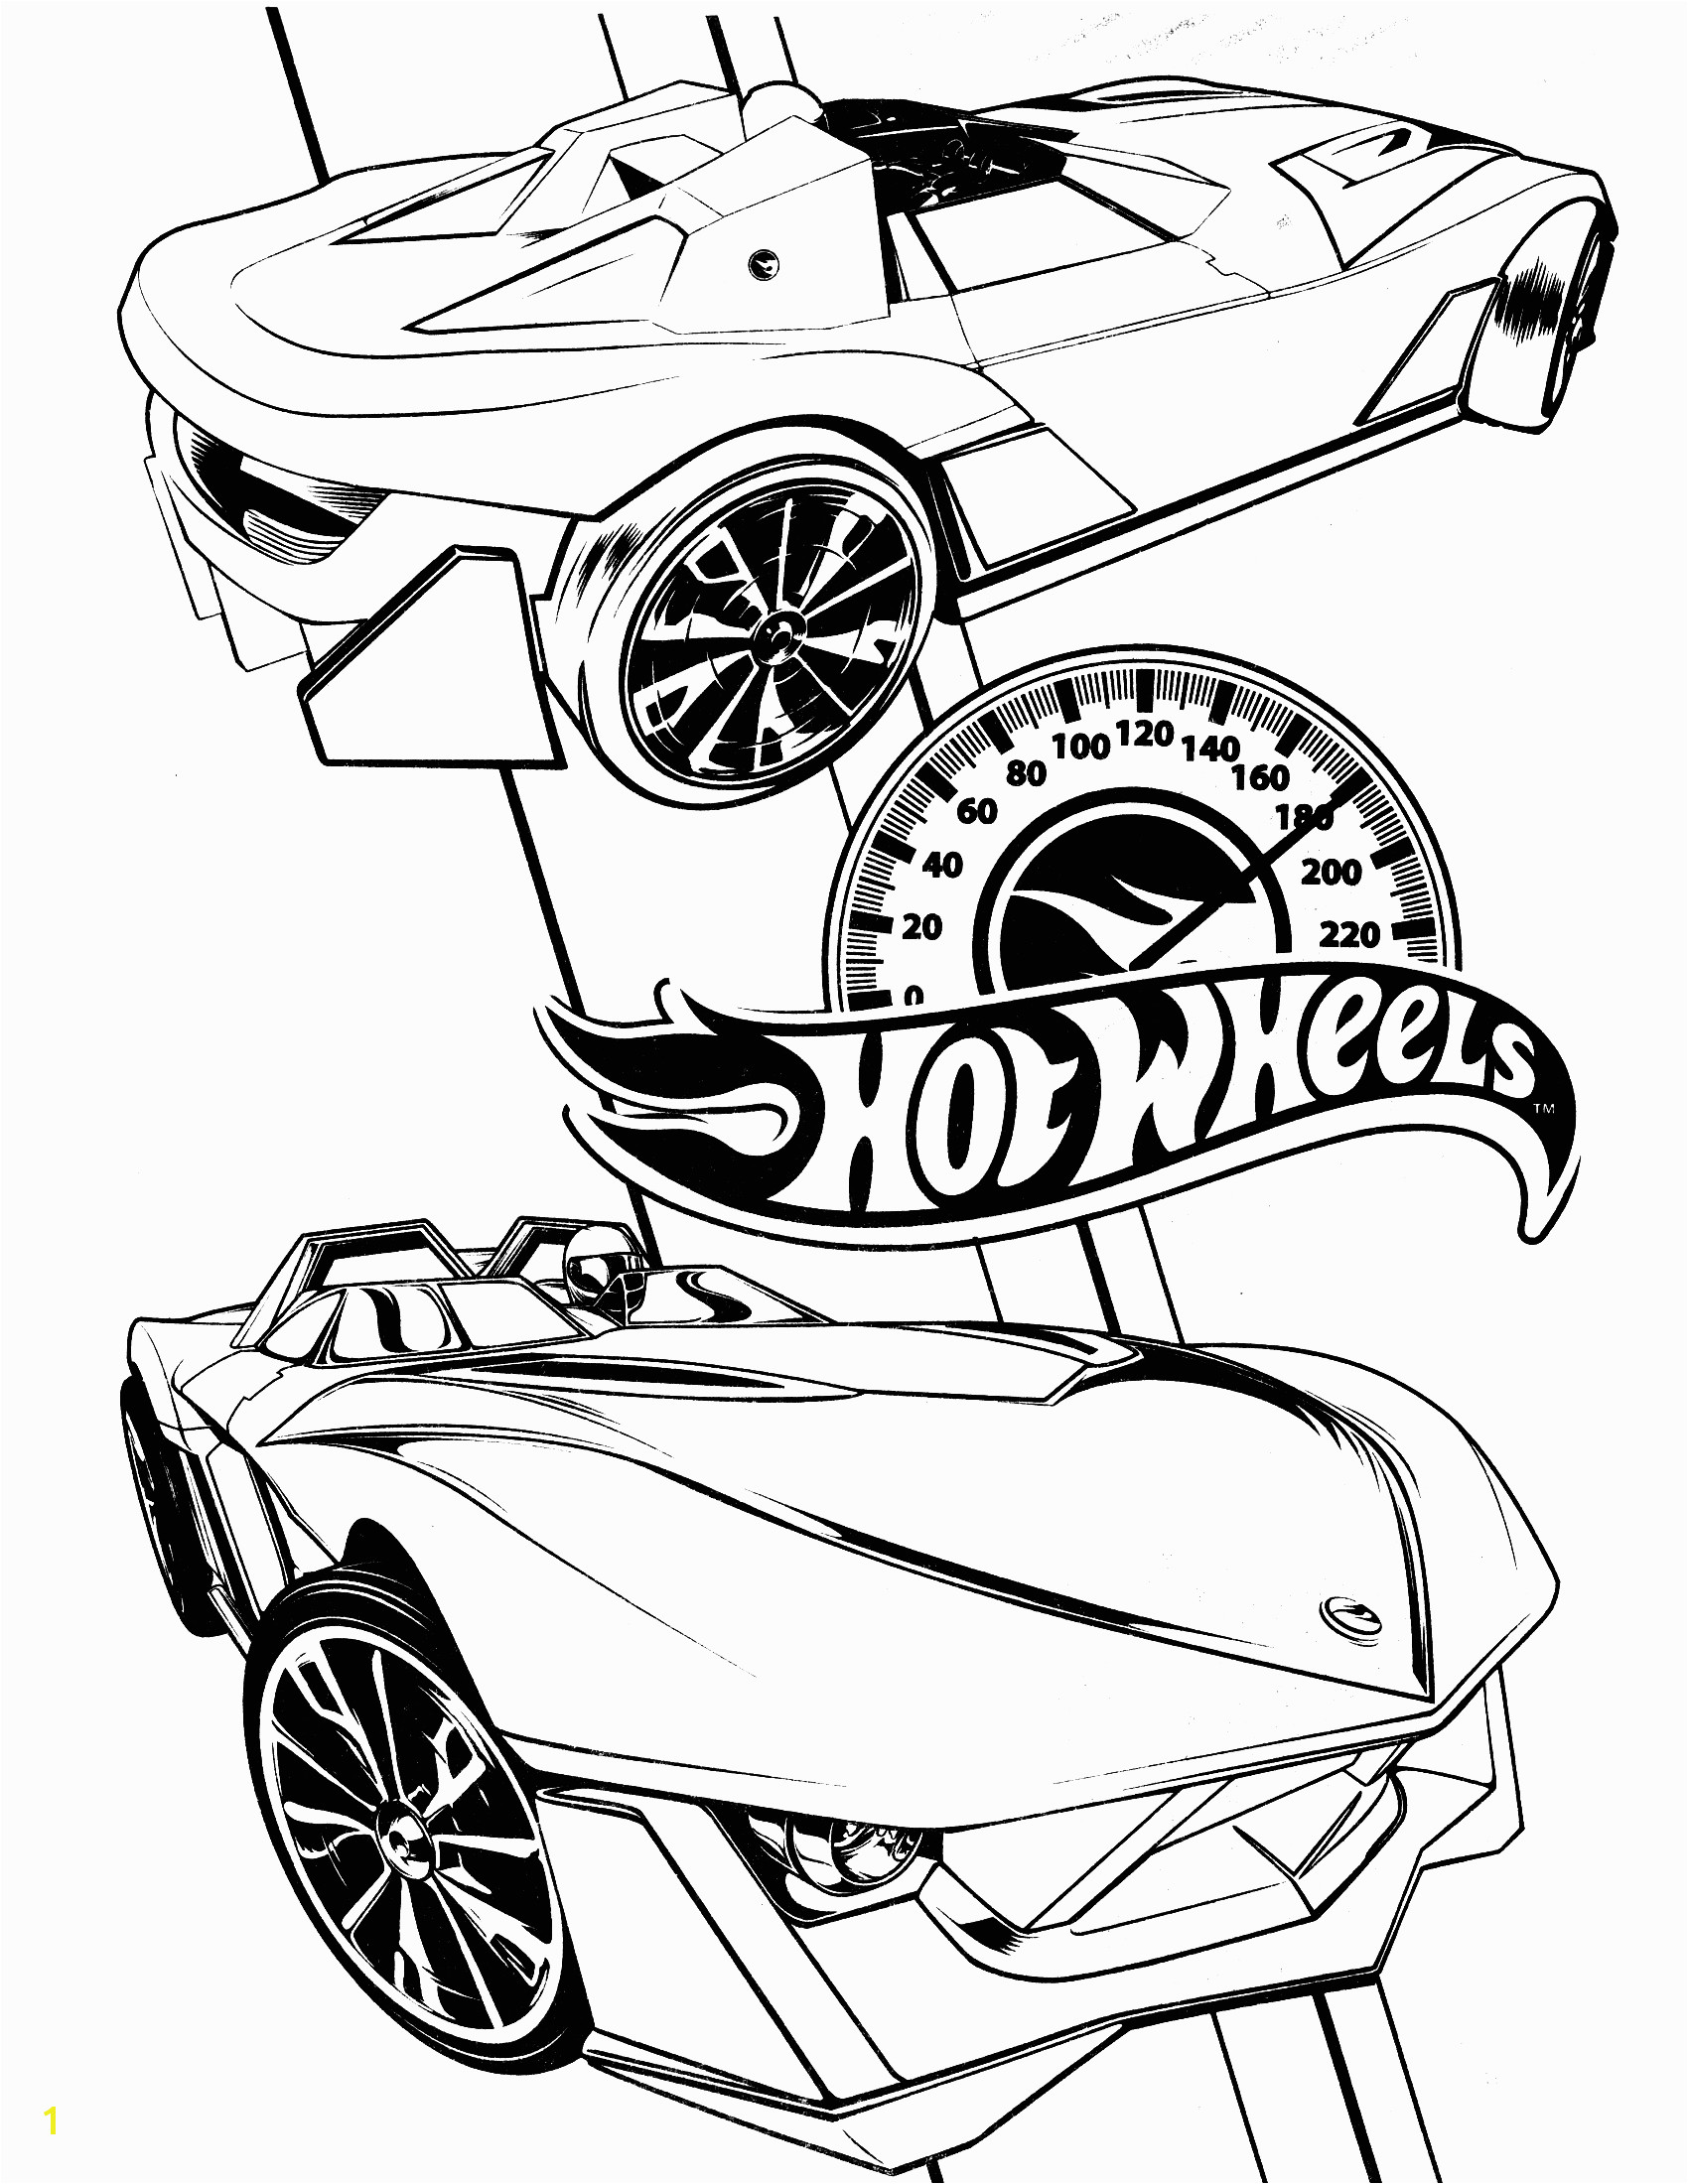 Hot Wheels Cars Coloring Pages Hot Wheels Car Drawing at Getdrawings